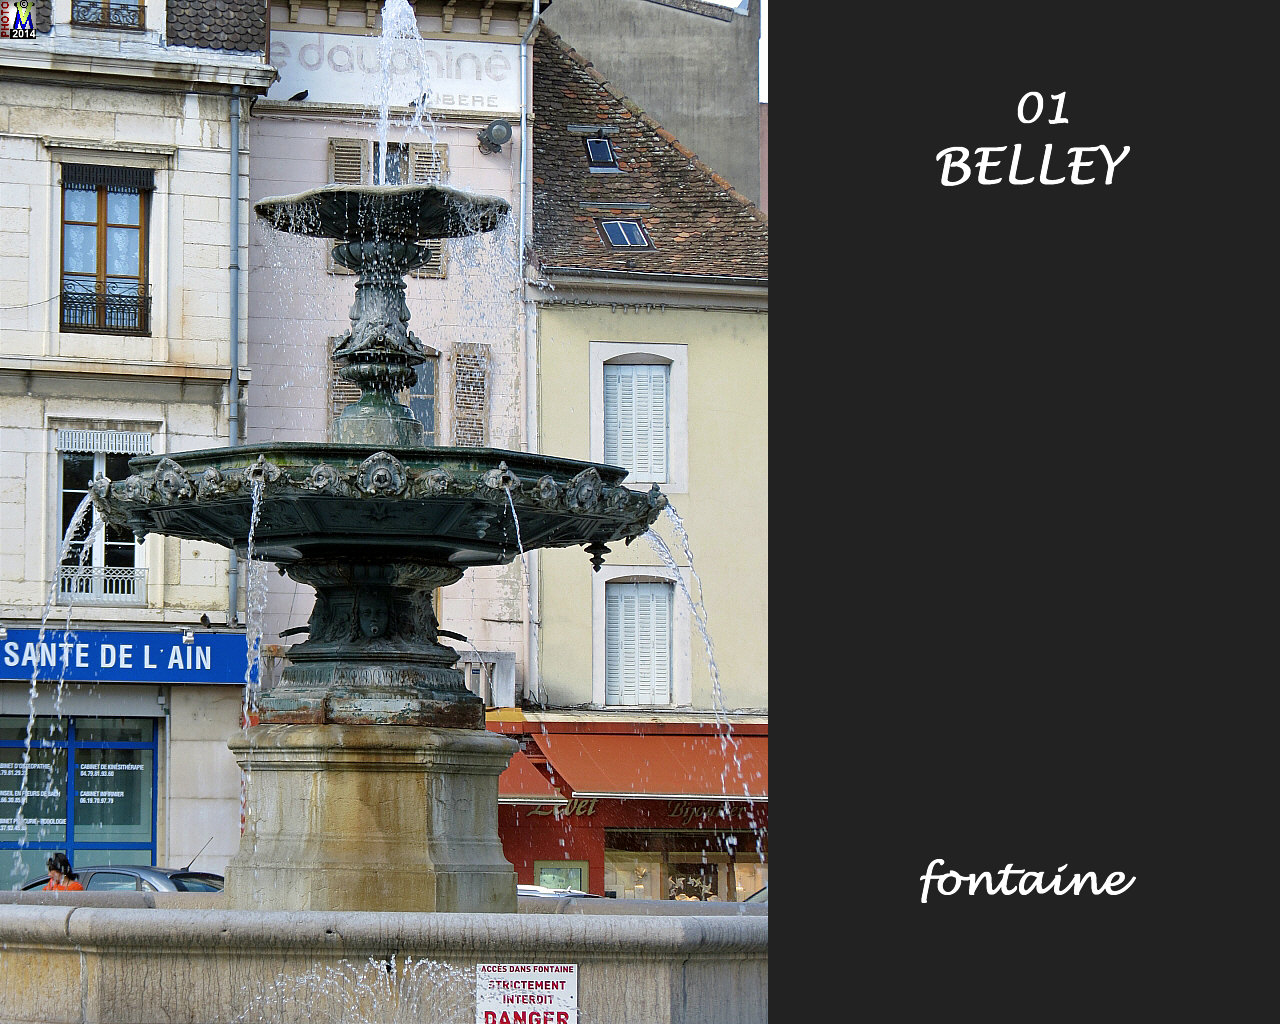 01BELLEY_fontaine_102.jpg